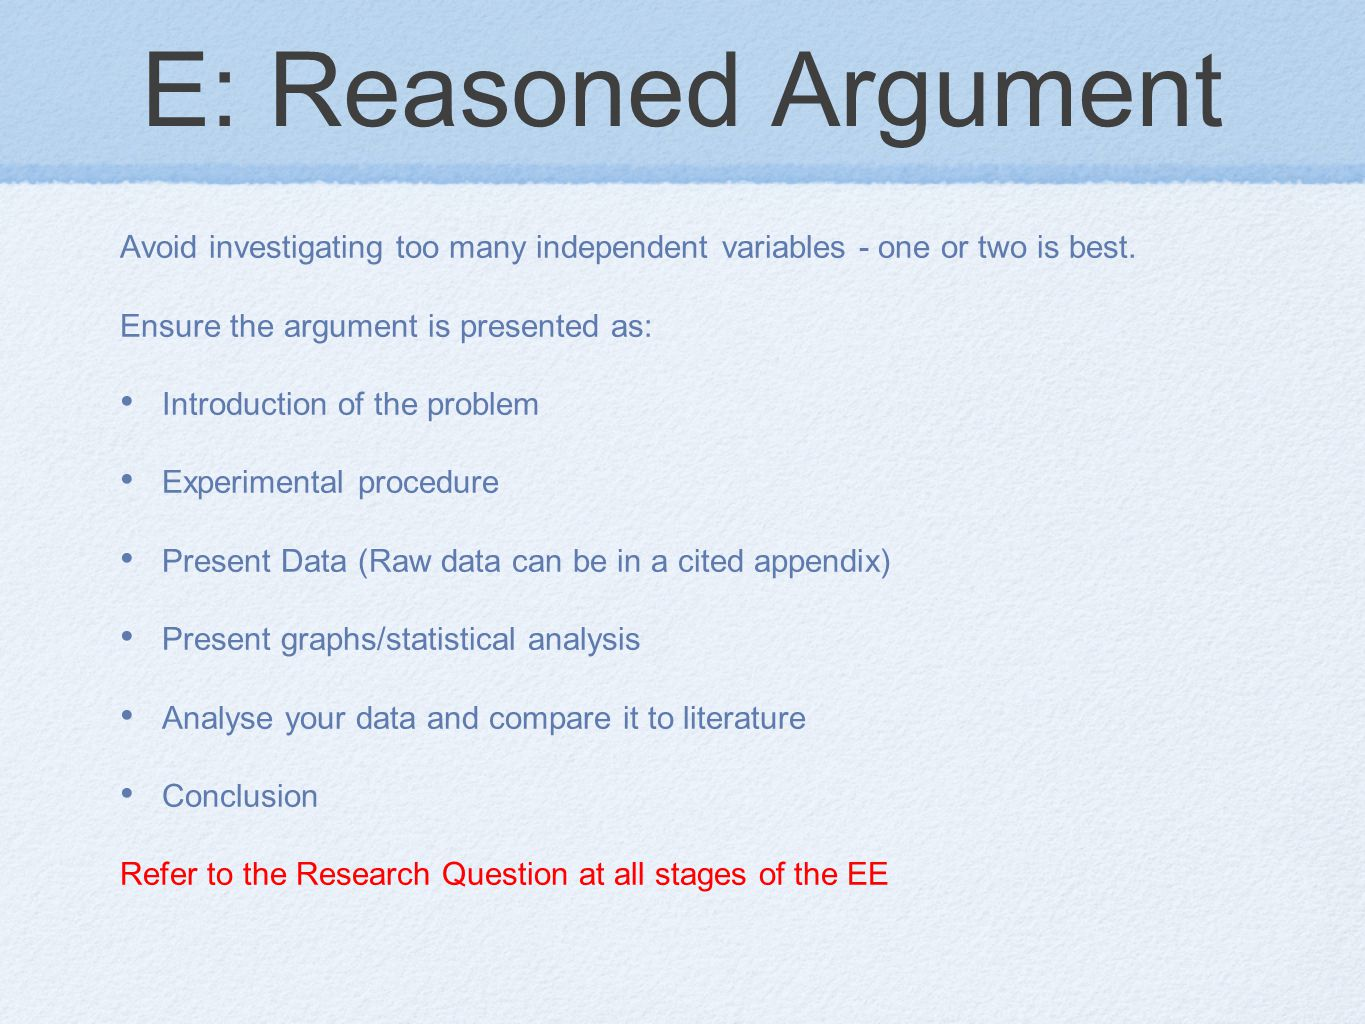 E: Reasoned Argument Avoid investigating too many independent variables - one or two is best.